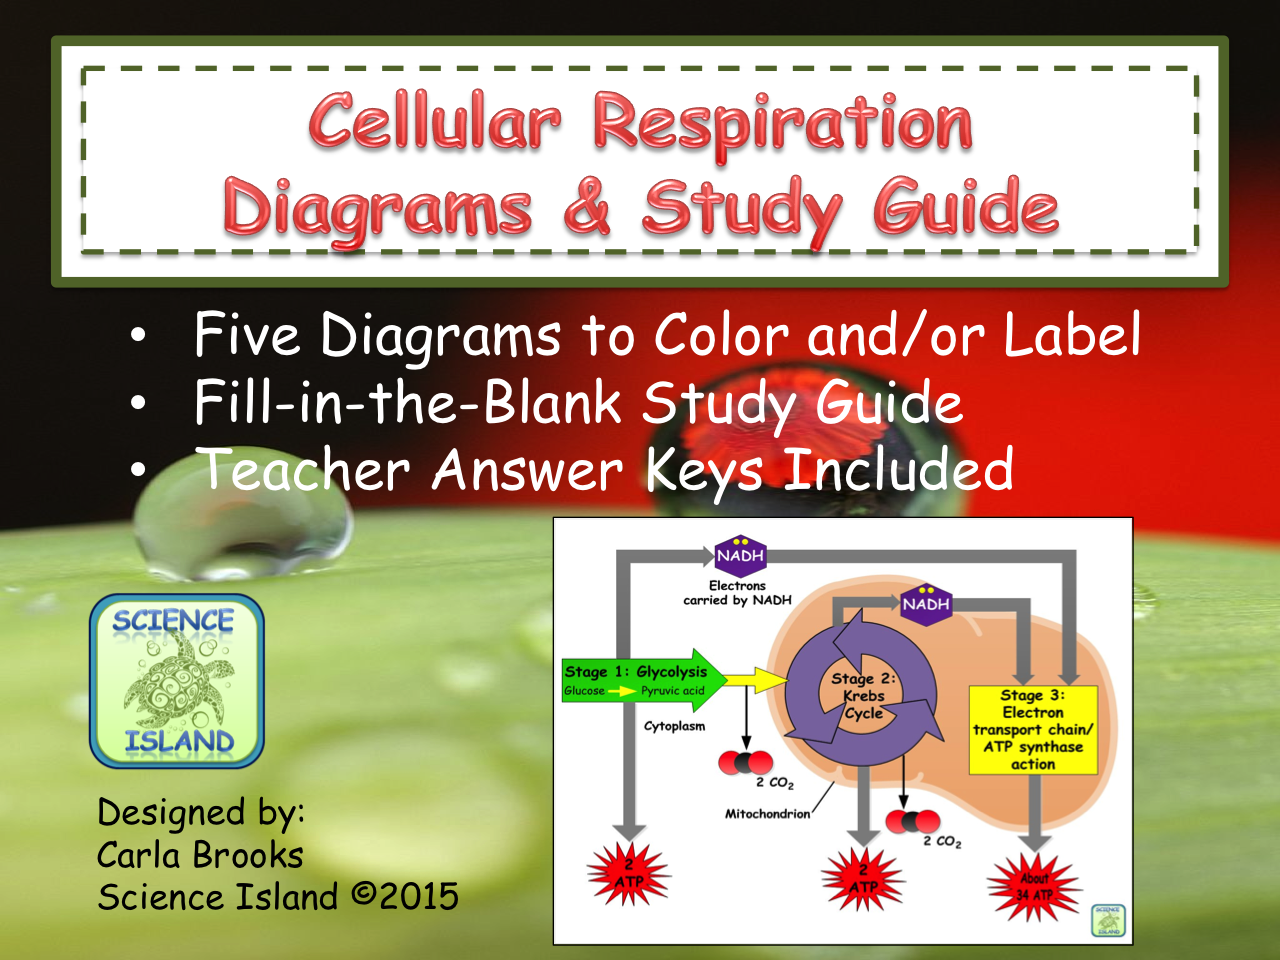 Cellular Respiration Diagrams and Study Guide Diagram